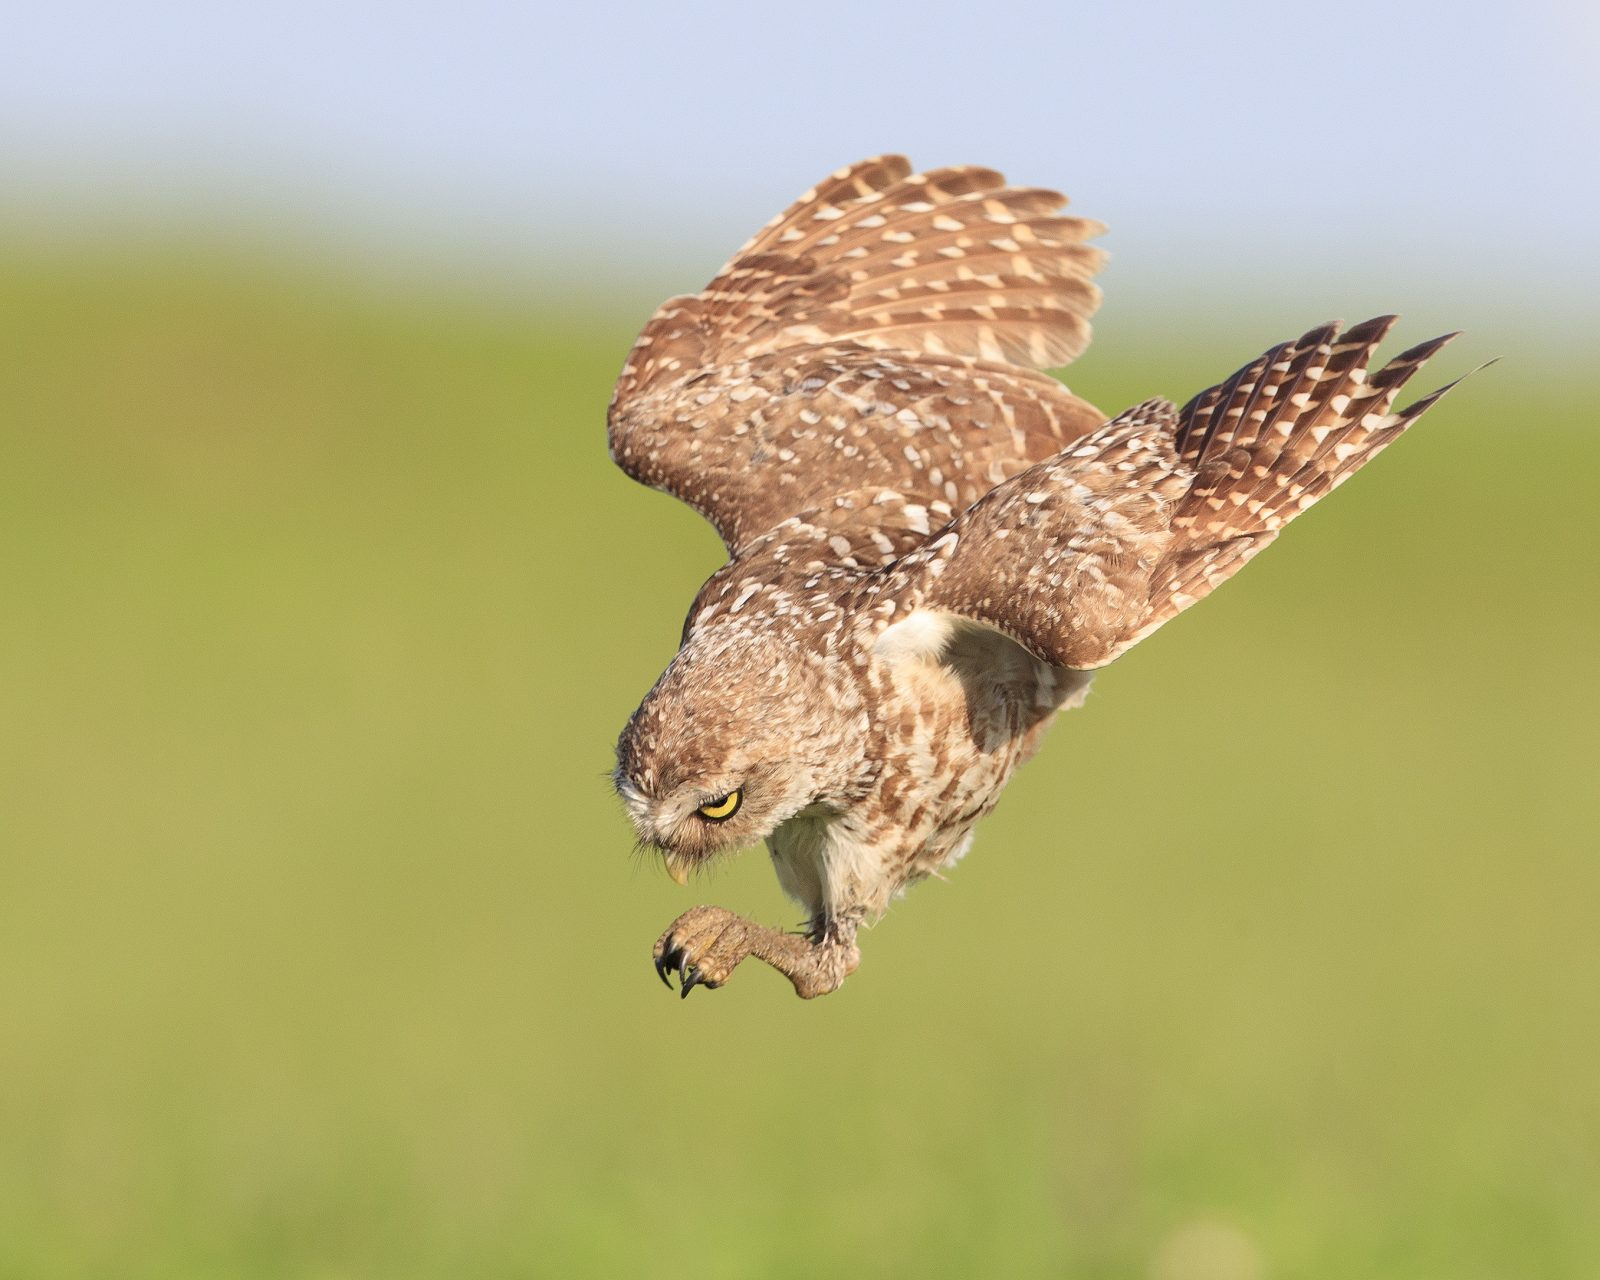 Burrowing Owl diving for a snack